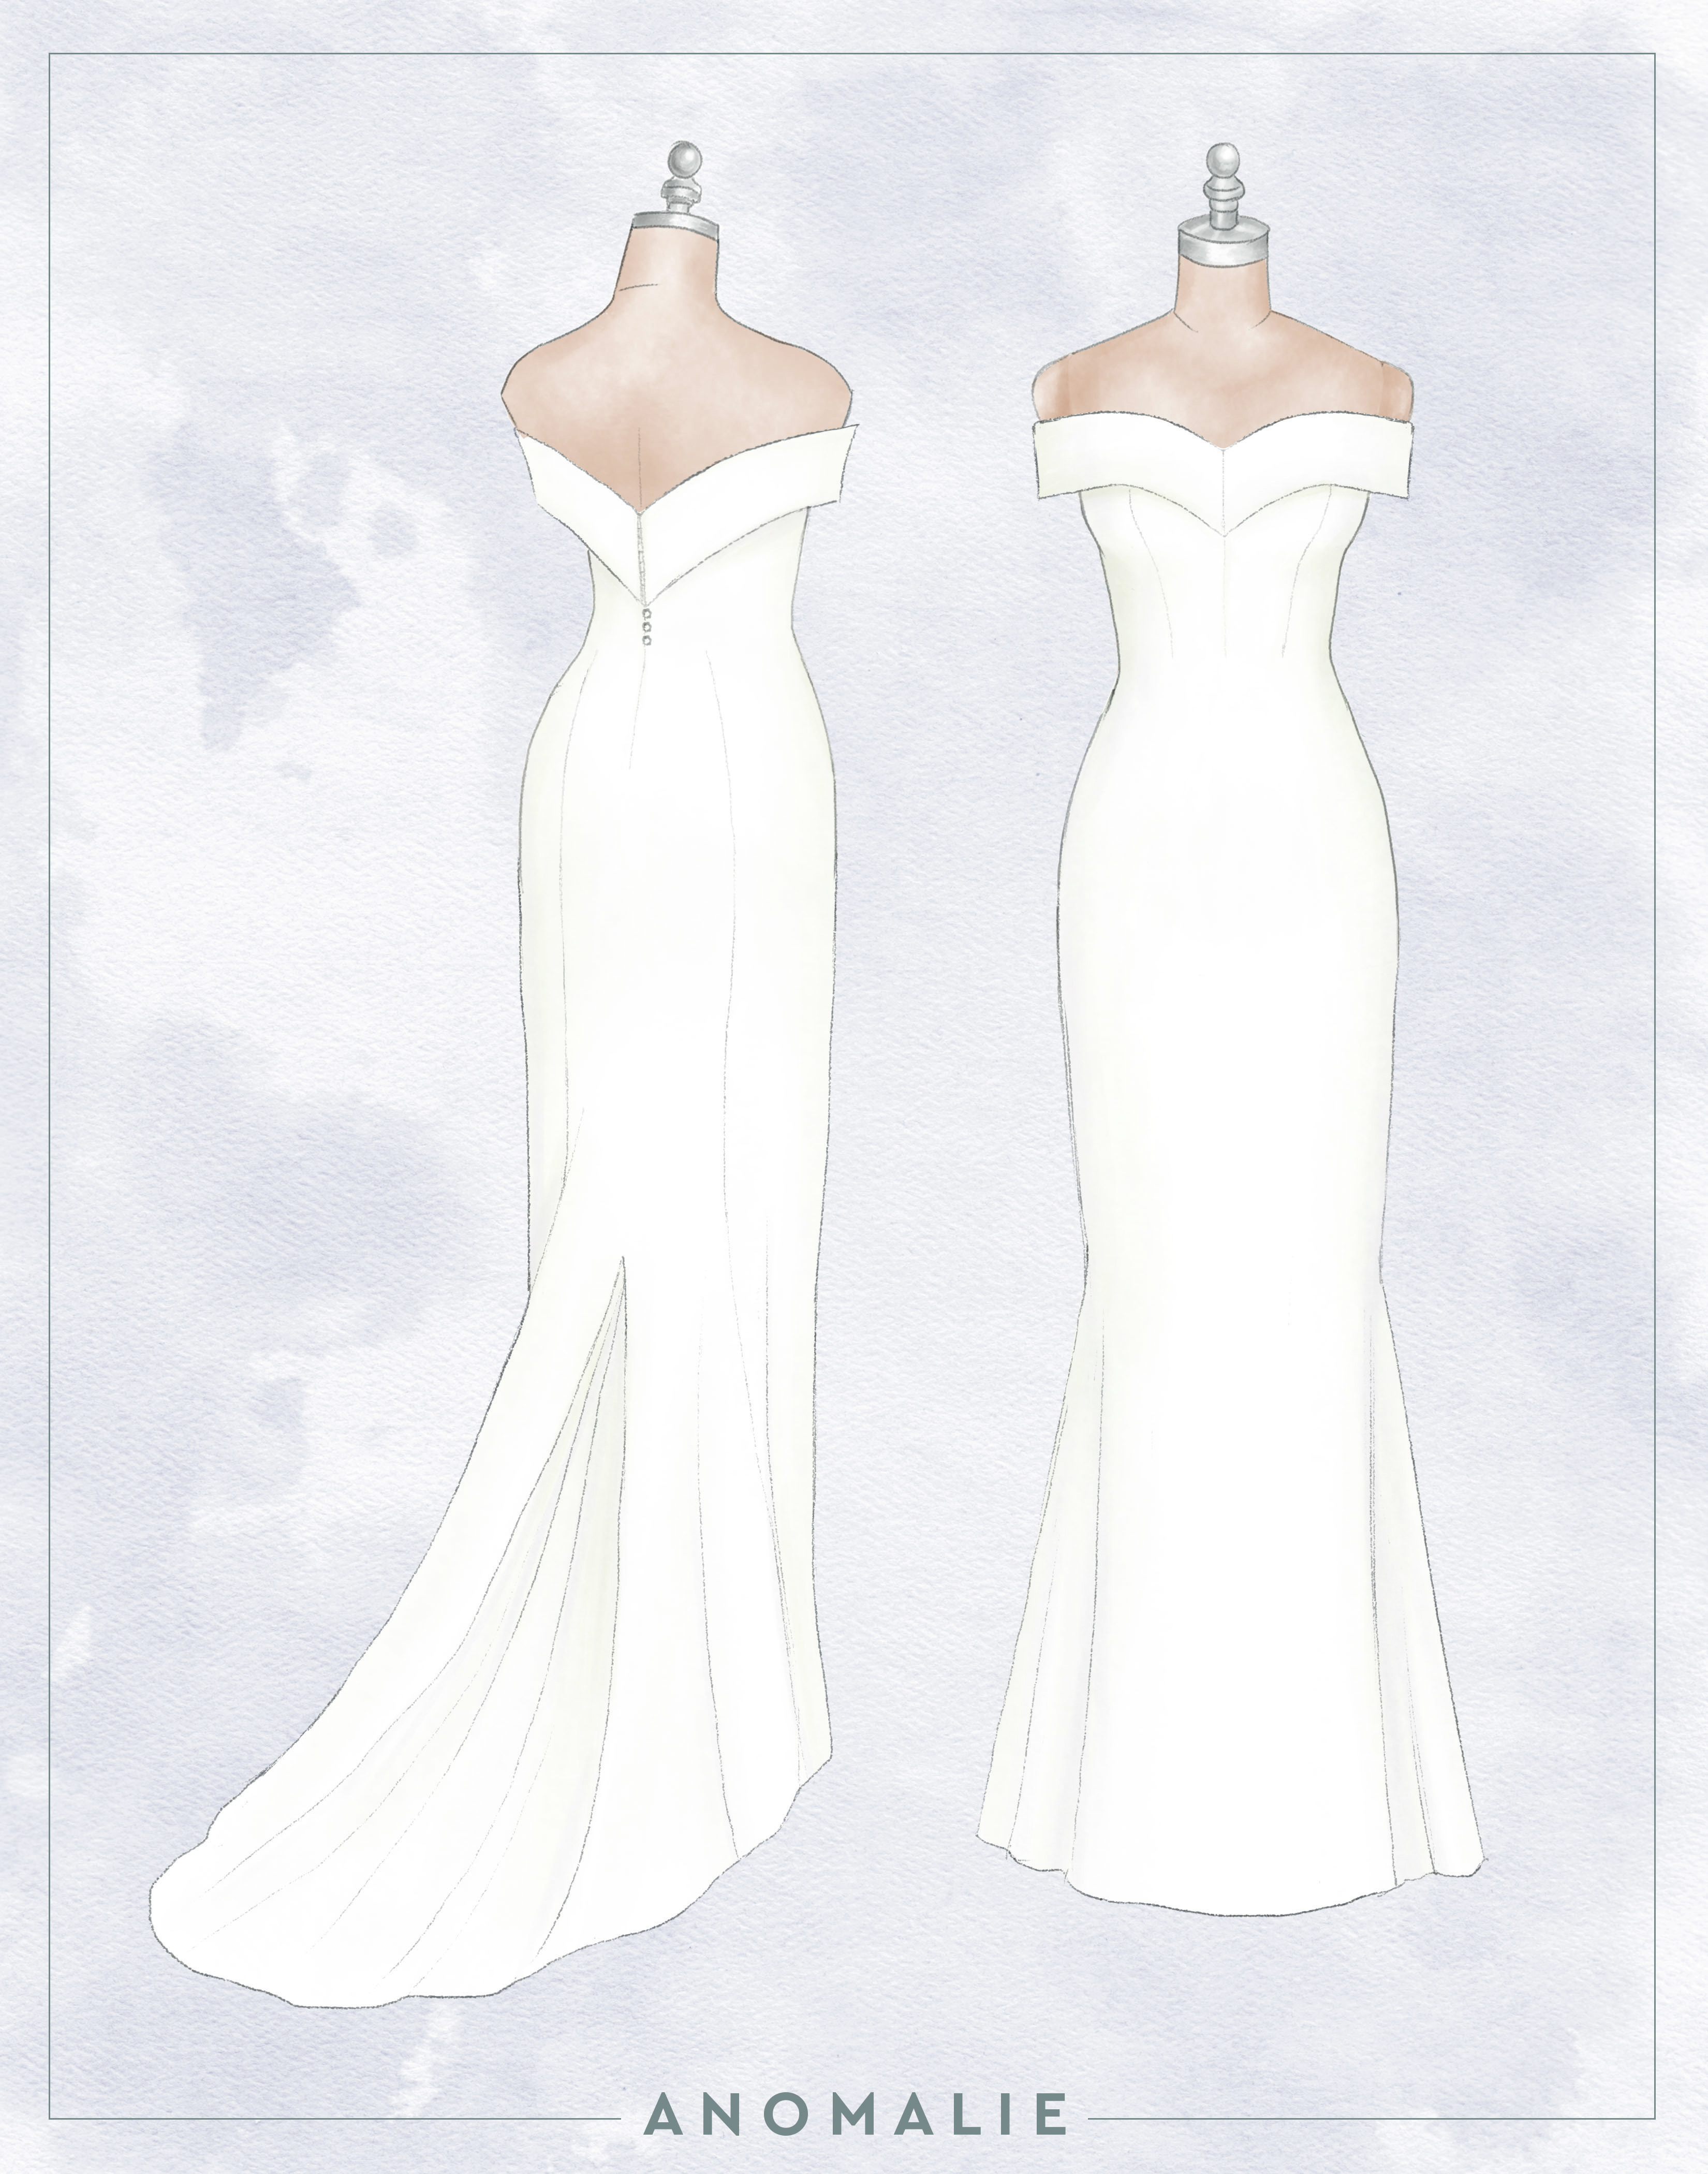 Custom sketch online wedding gown designed by Anomalie that is similar to Miley Cyrus